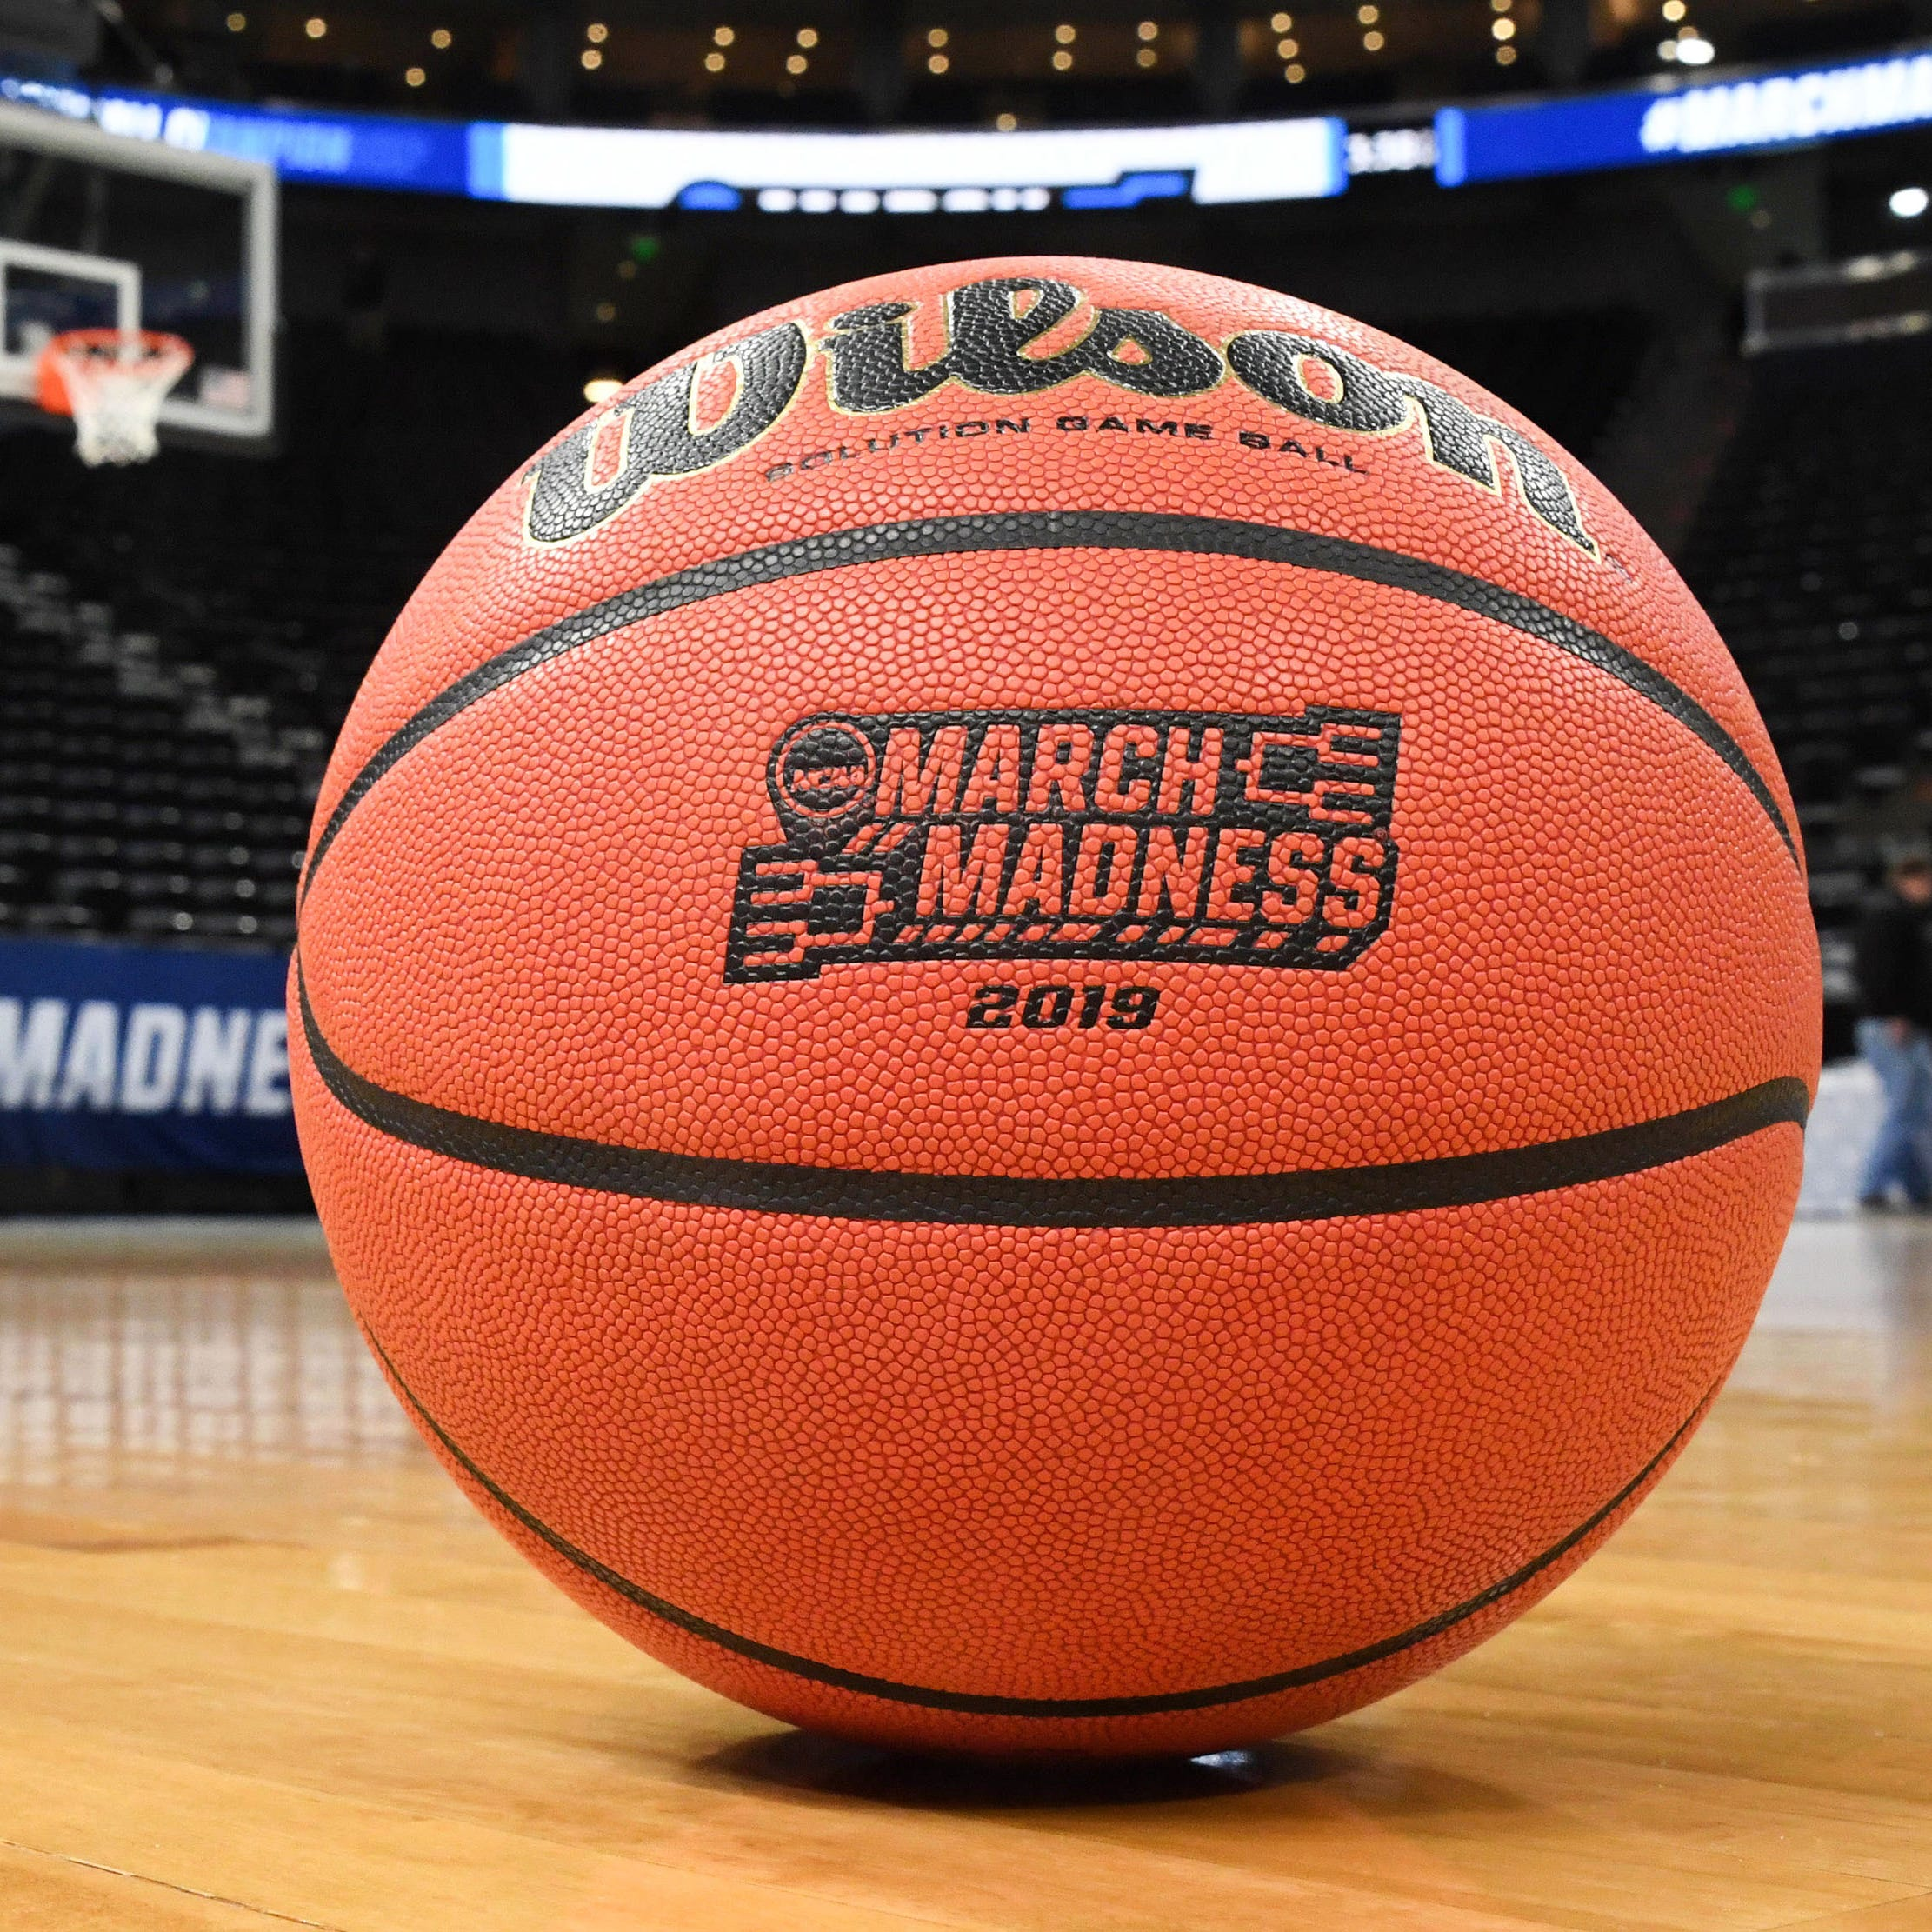 Ohio man has the only one perfect NCAA tournament bracket left entering Sweet 16